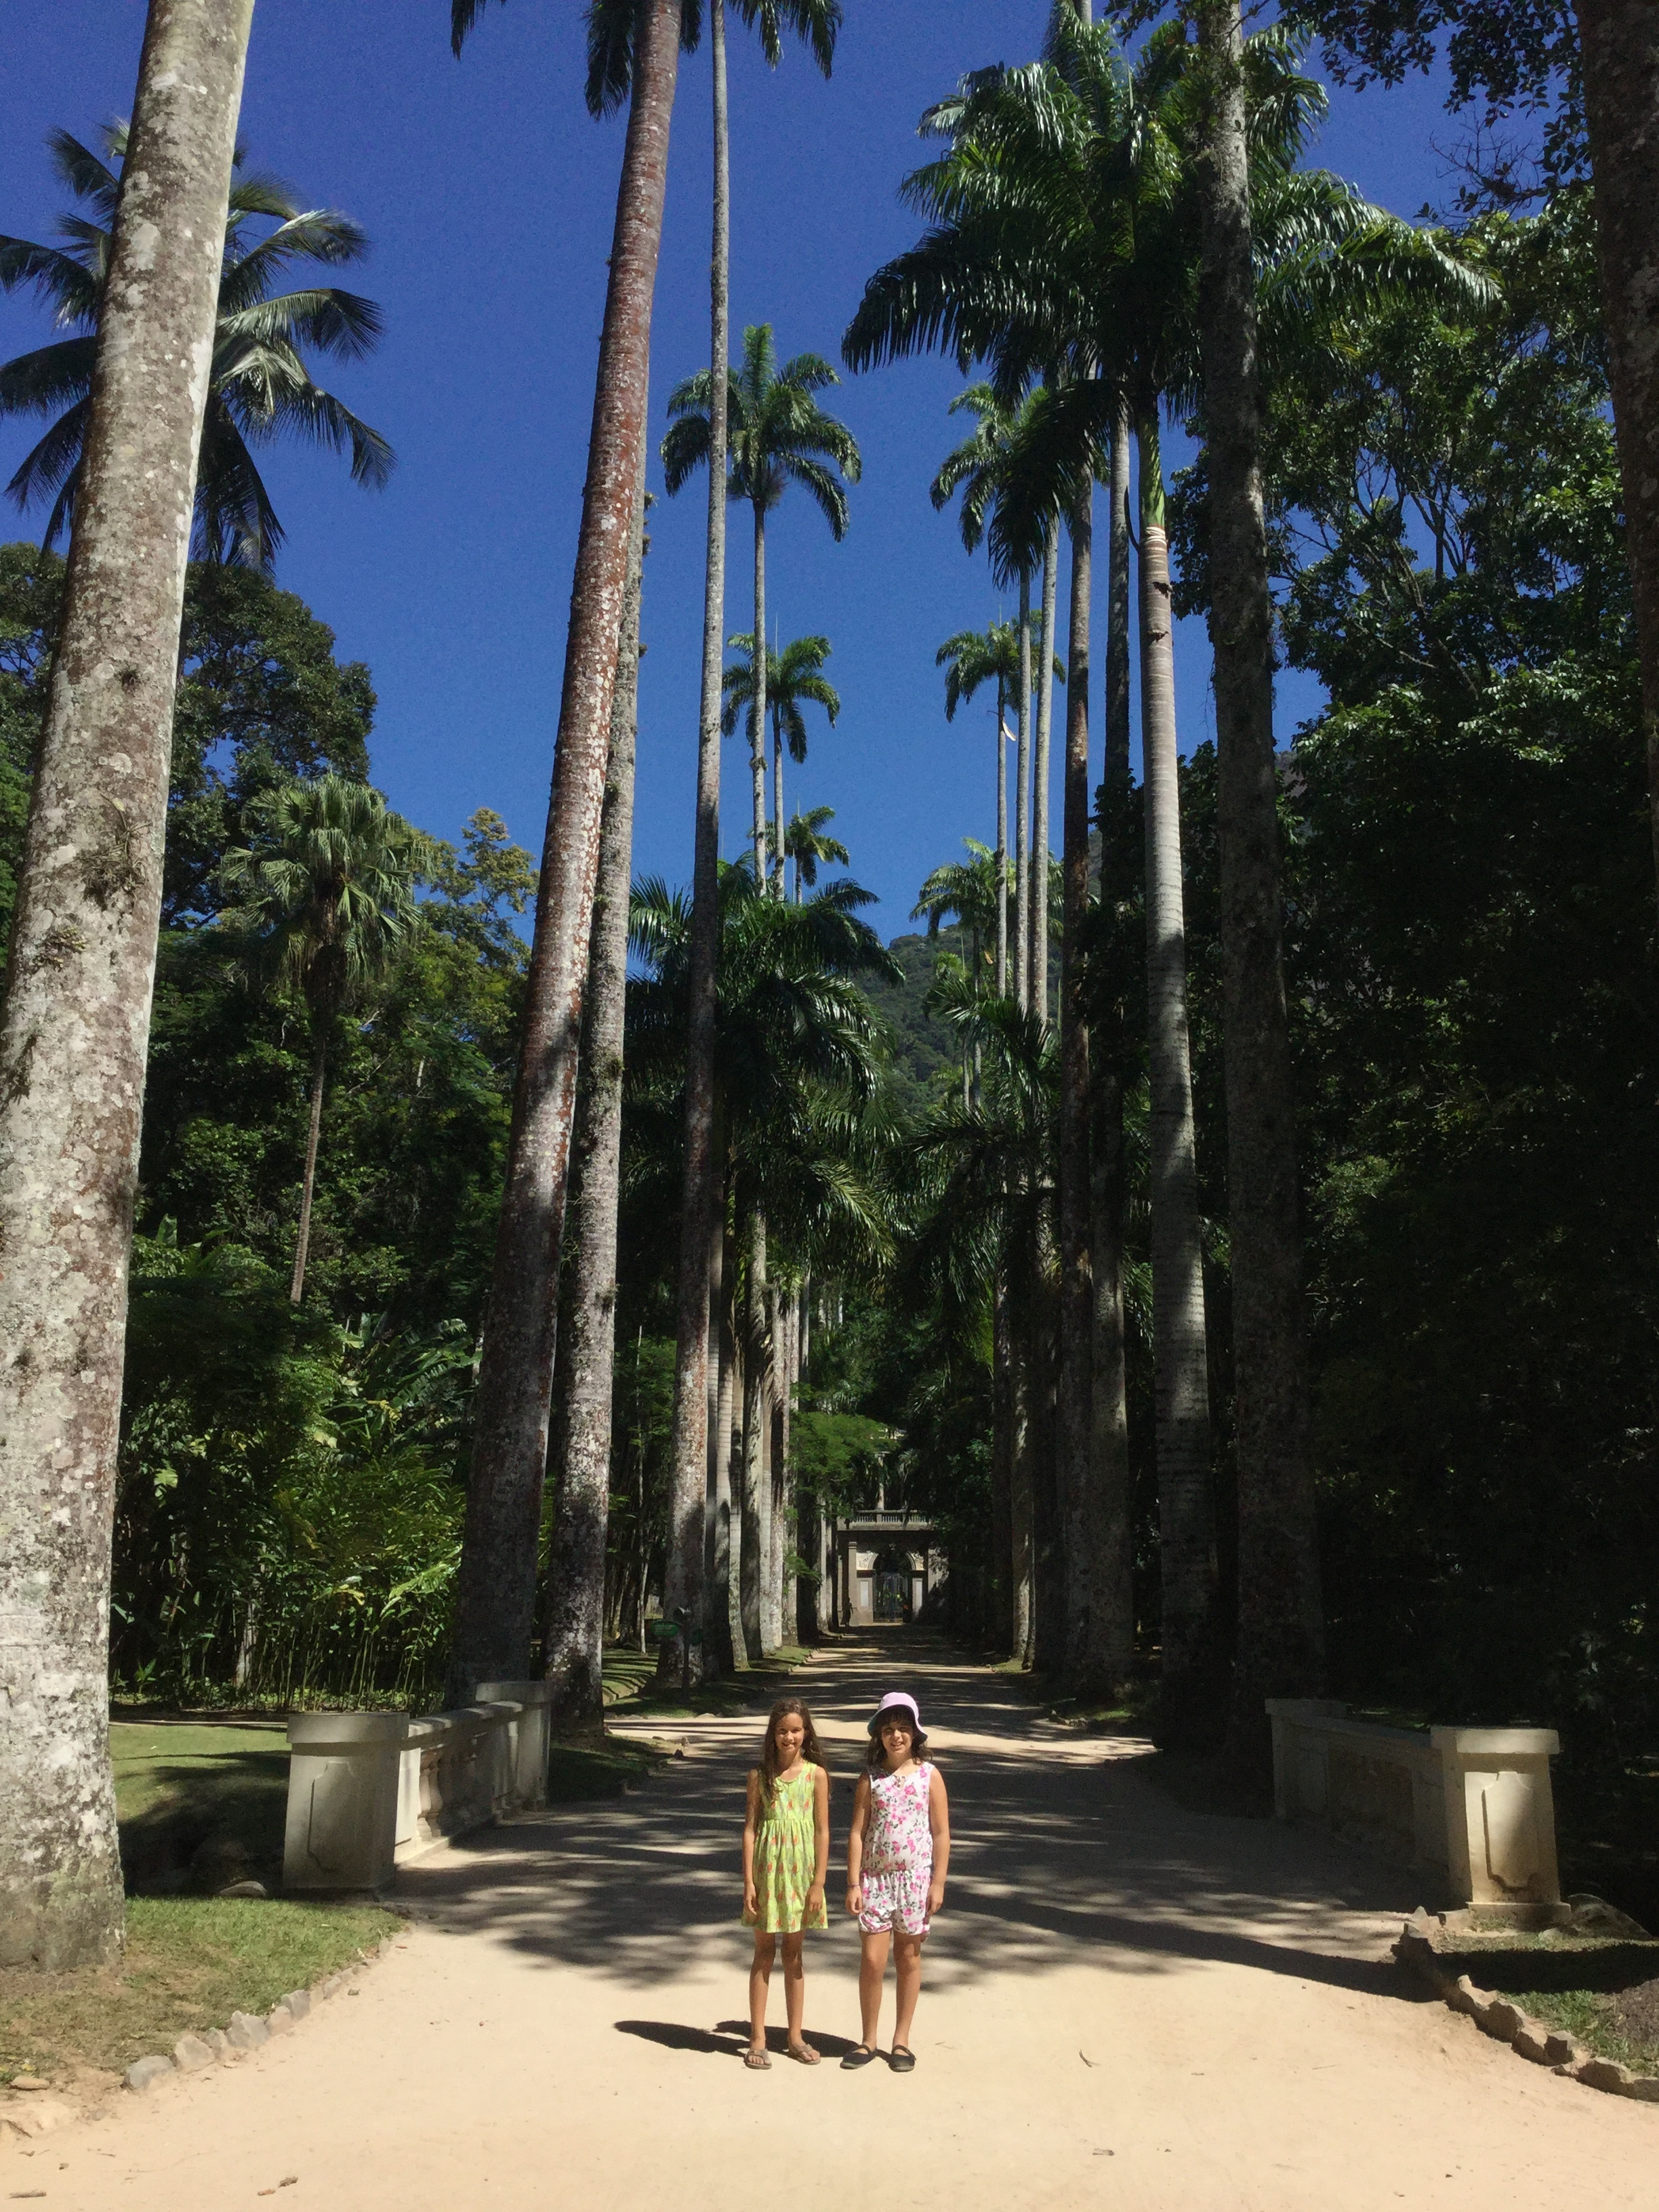 This is a classic Jardim Botanico picture. The boulevard of Emperor Palms, majestically reaching to the sky. And back to the topic of climbing palm trees - apparently in the past you could make so much money from selling the seeds of this palm tree that slaves would learn to climb them. Not everyone had emperors palms!